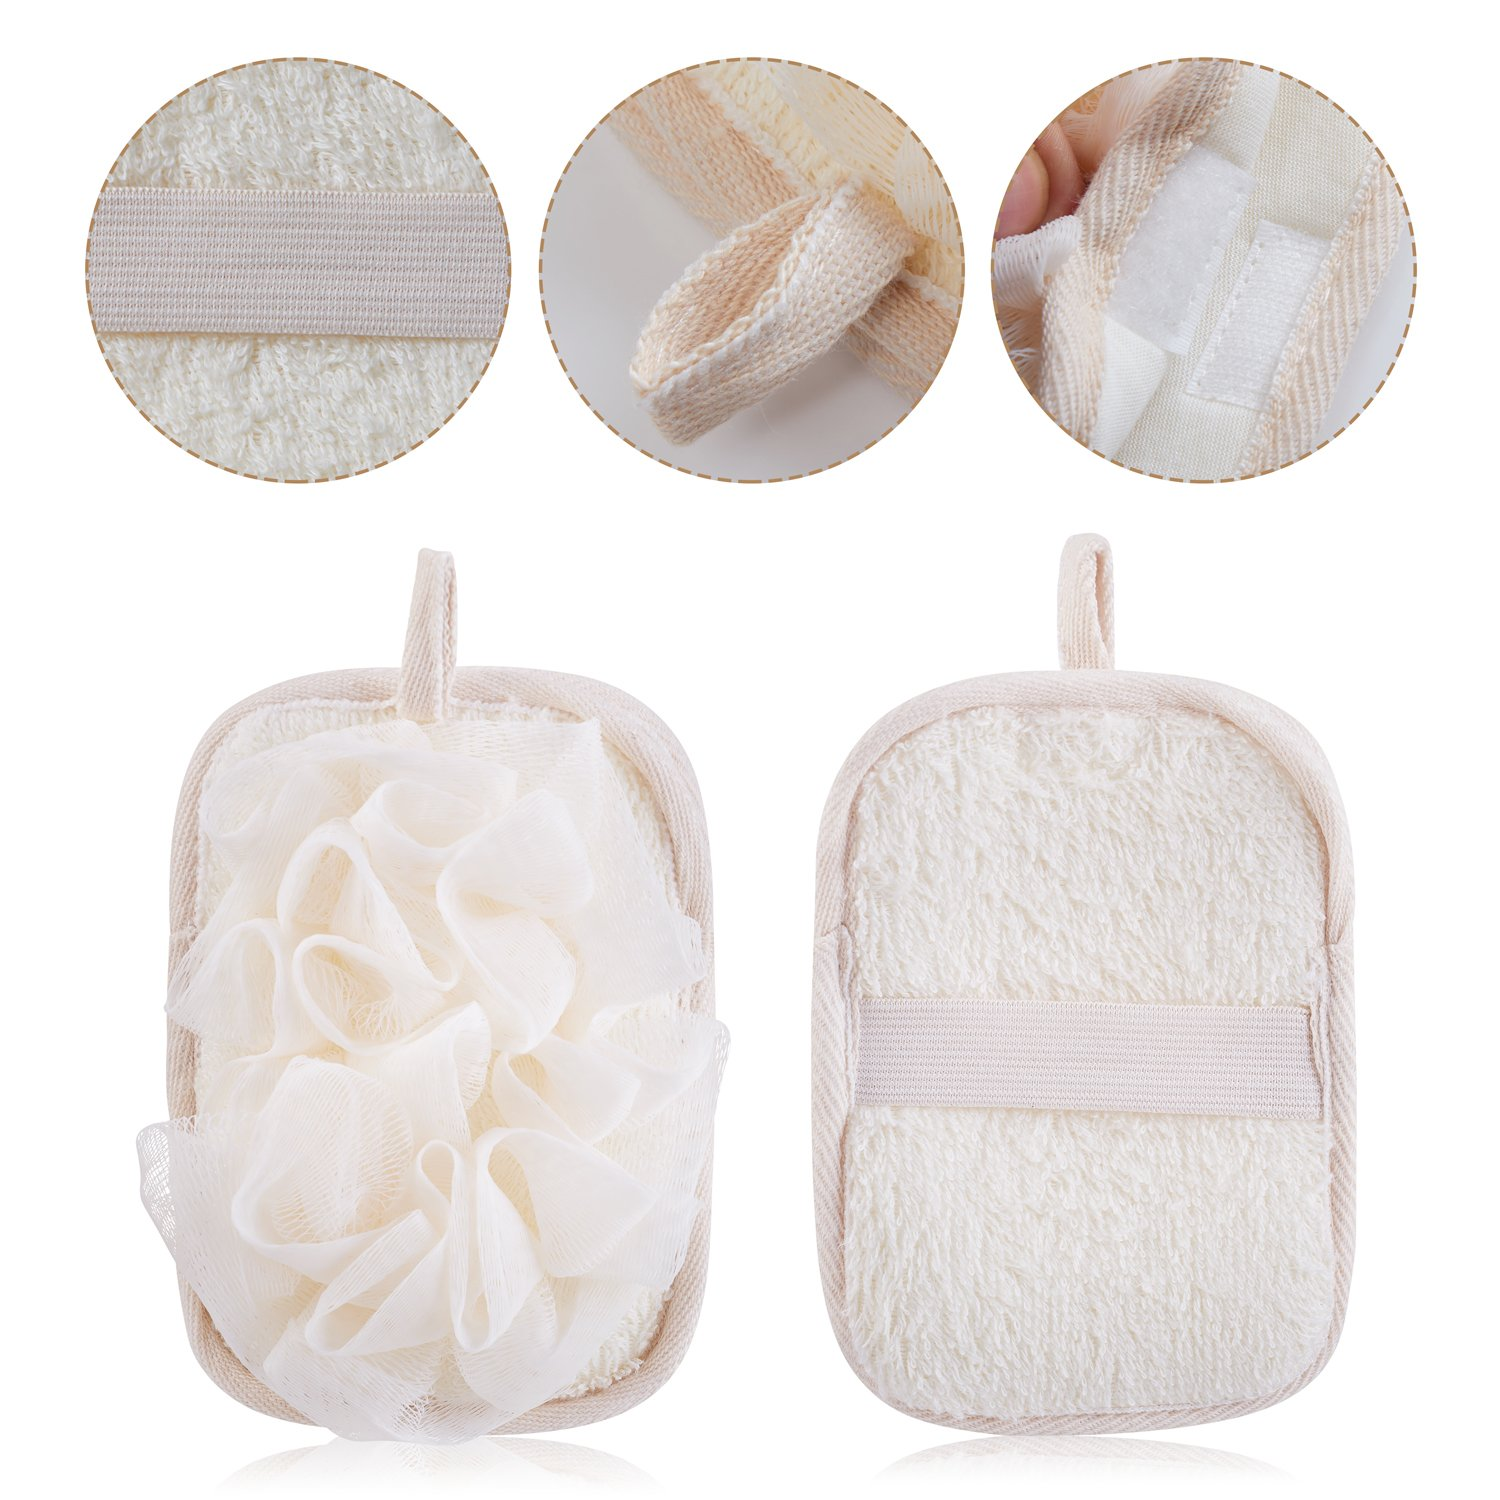 mikimini Bath Mitt for Women, Bath Pouf Mesh Brushes 2 Packs Set | Loofah Sponge & Exfoliating Pad 2 in 1 Professional Design | Exfoliating Gently with the Elastic Hand Strap or Wearing the Mitten by mikimini (Image #3)